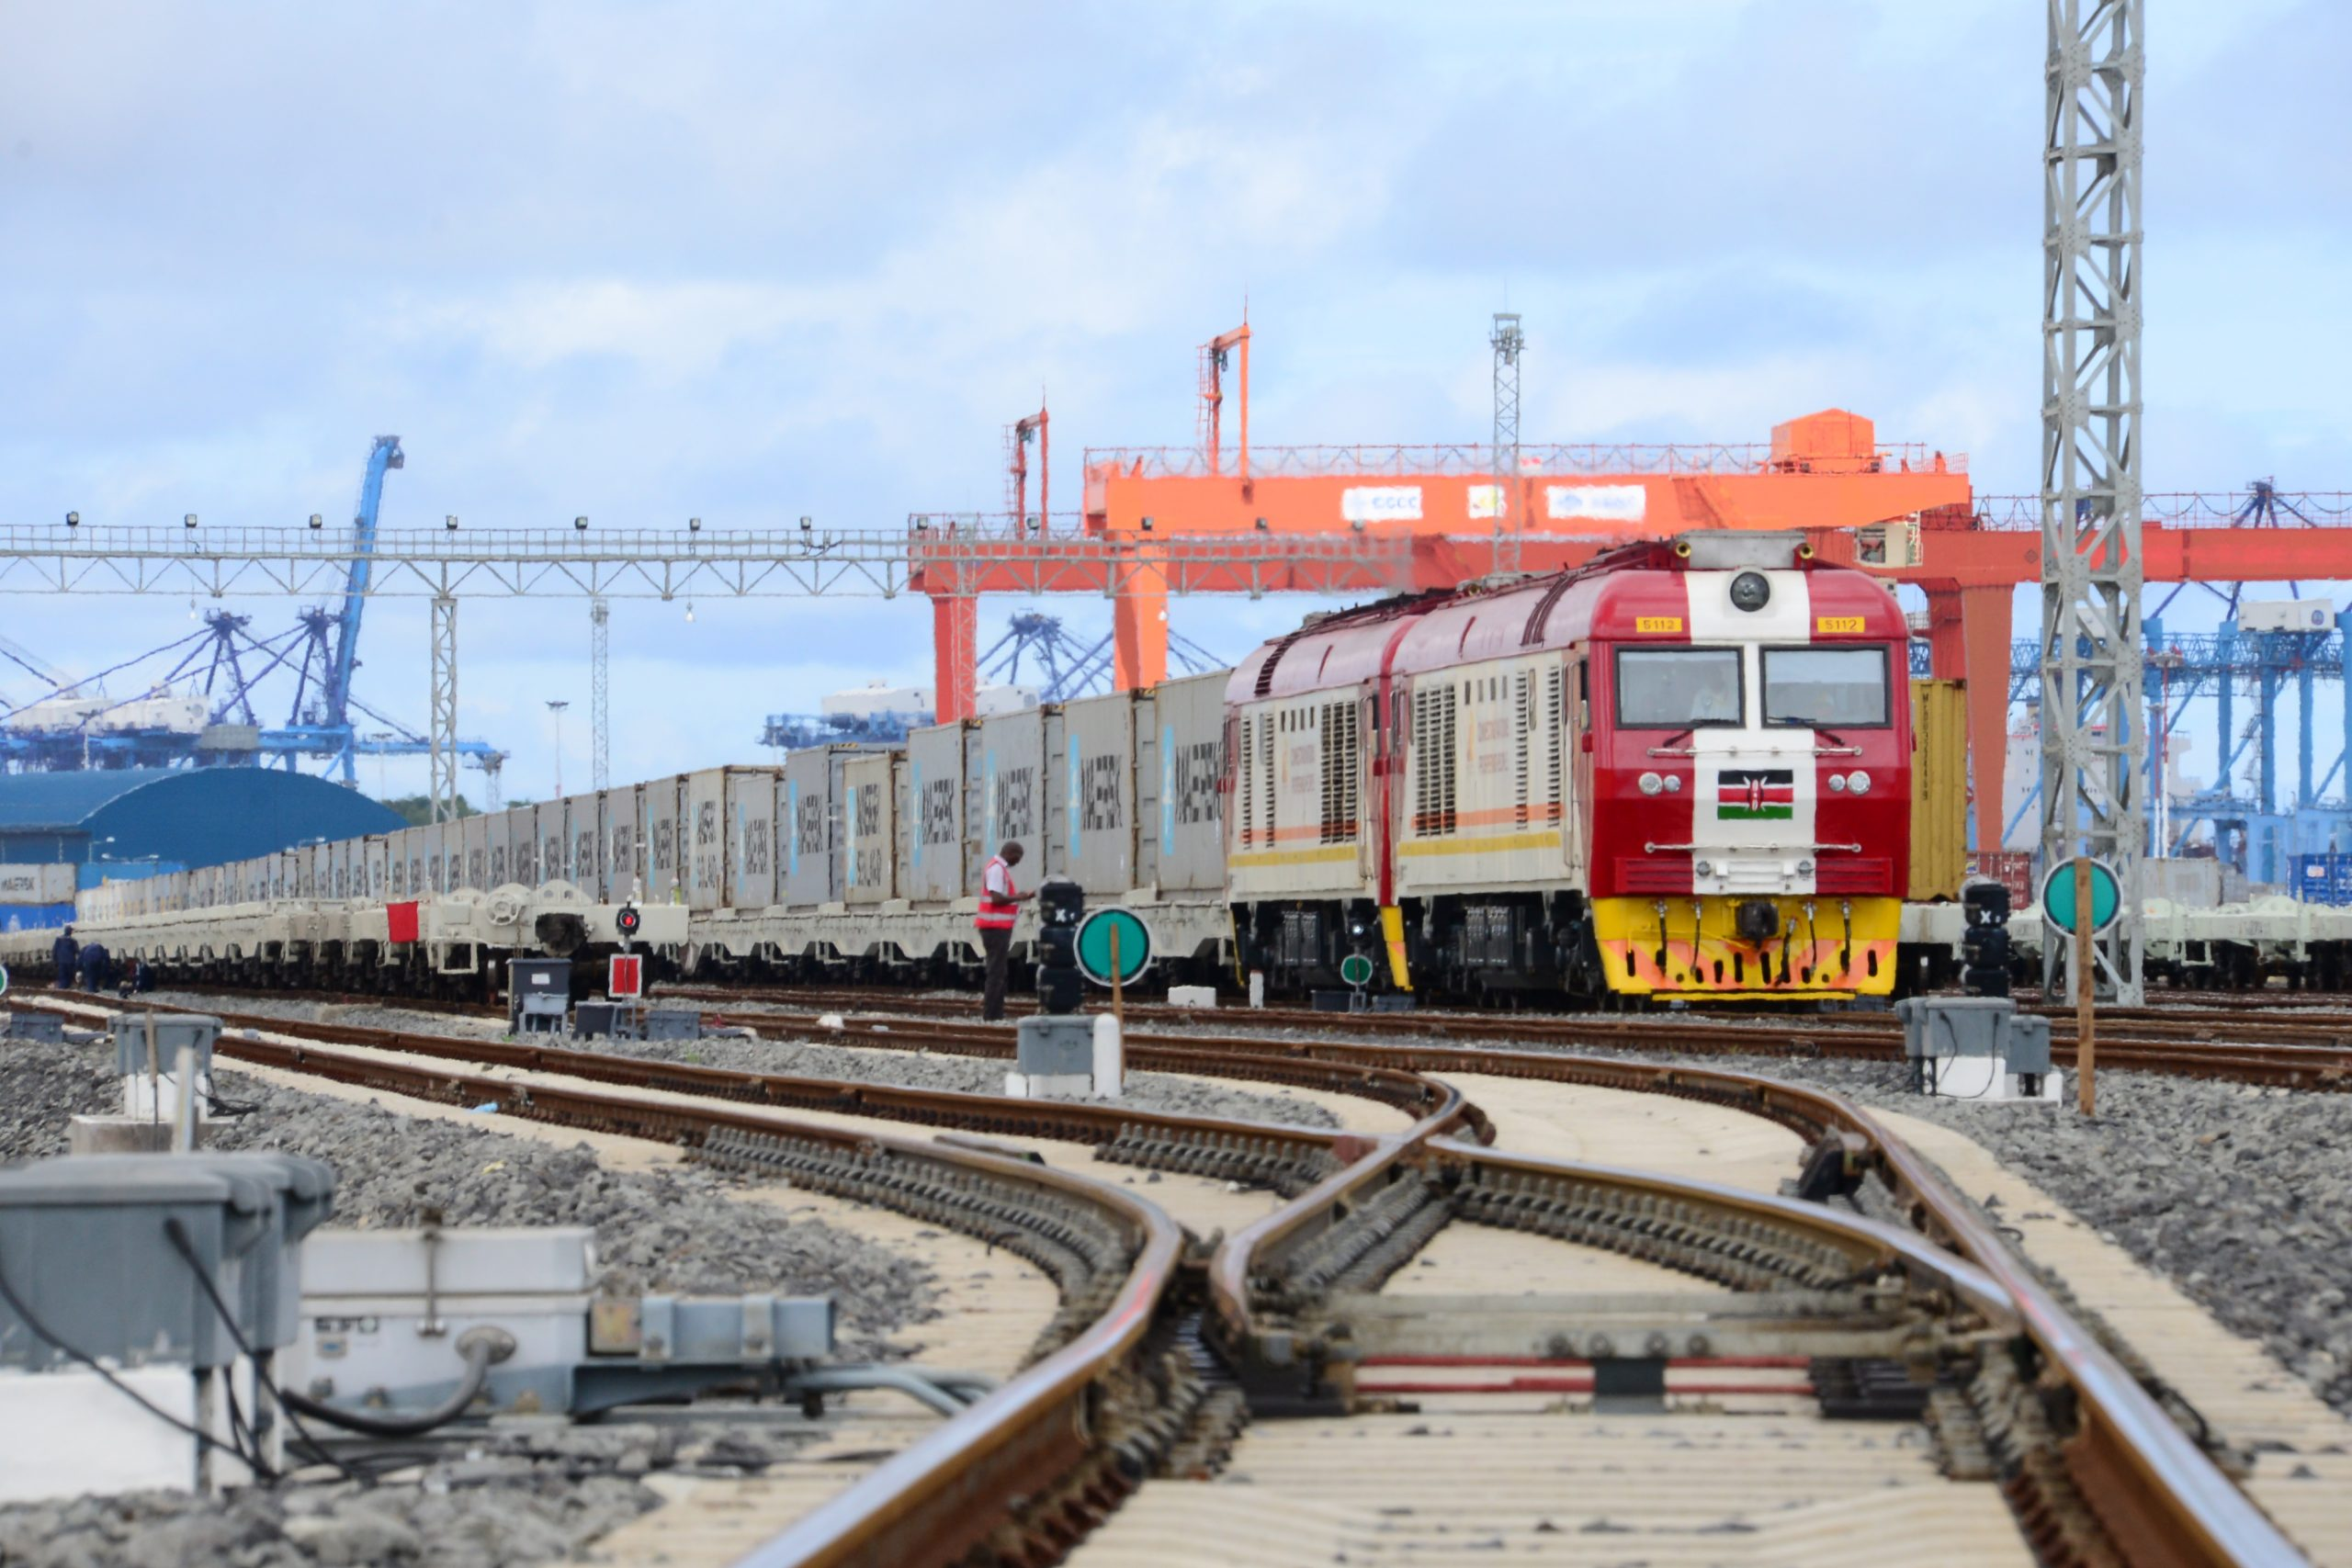 Goldfields Logistics Ltd SGR cargo train loaded with Maersk containers destined to Nairobi ICD